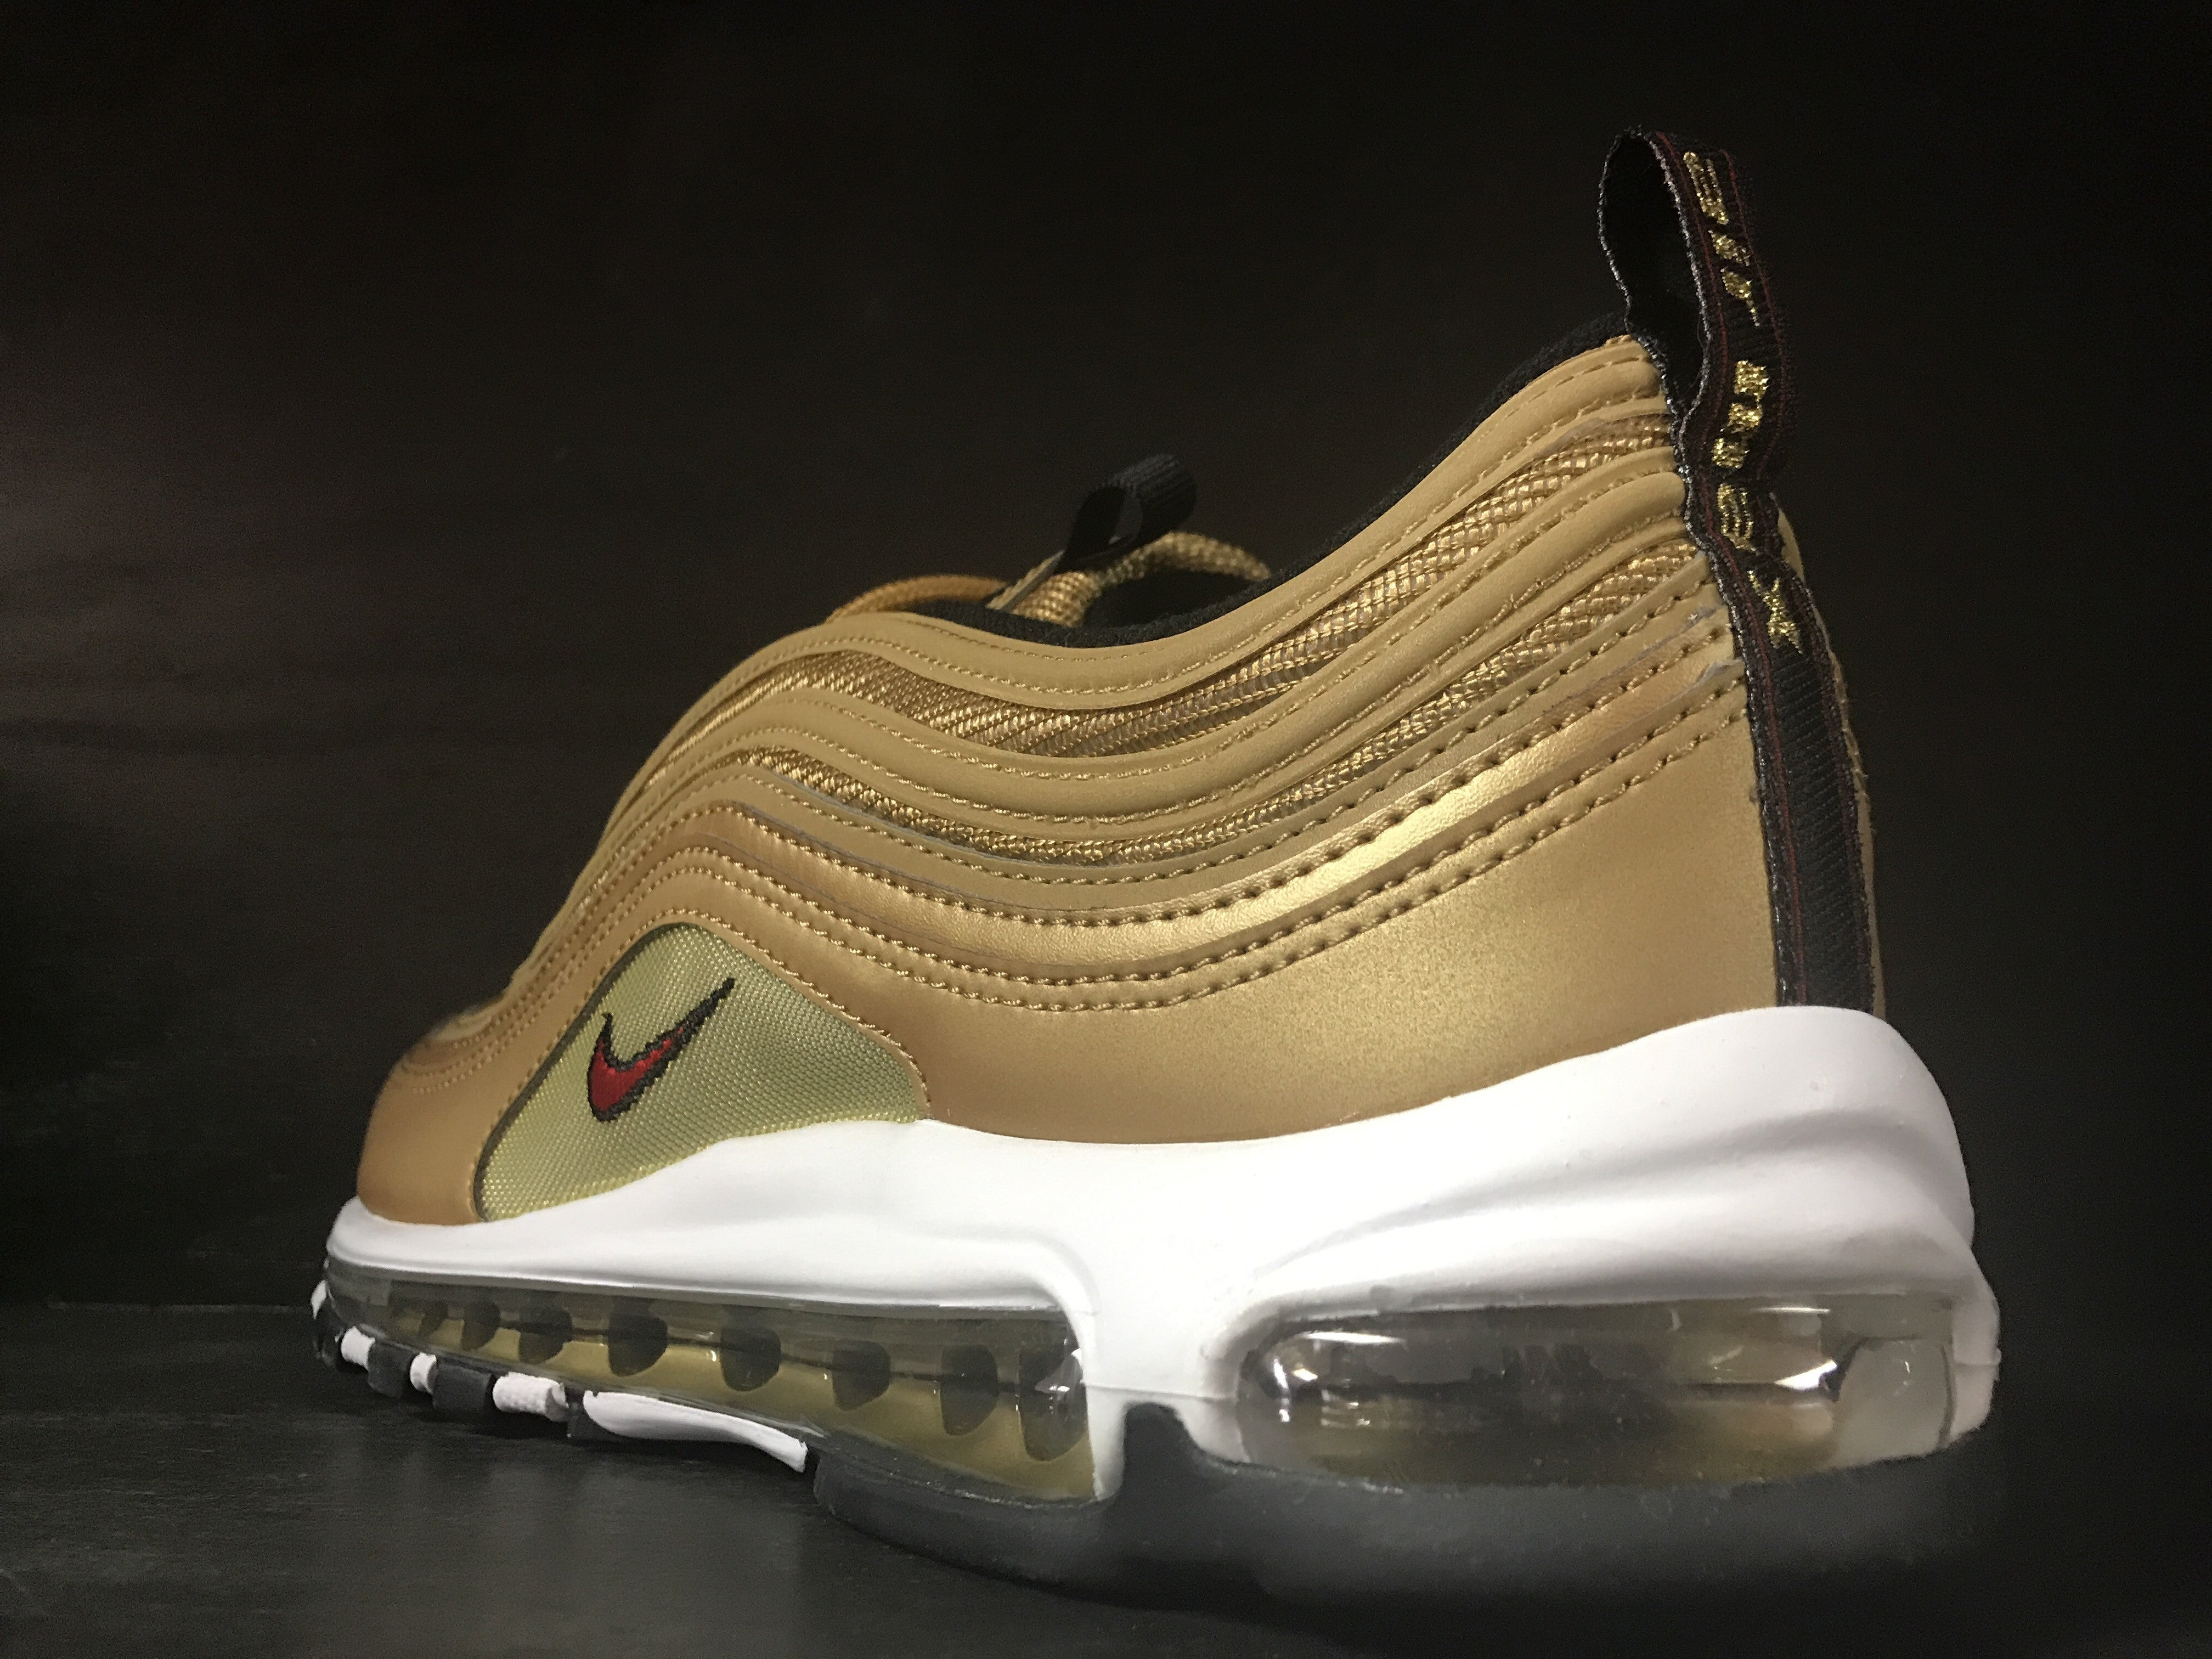 new product 950a5 d48ad Nike Air Max 97 OG QS 'Gold' – sneaker plugz